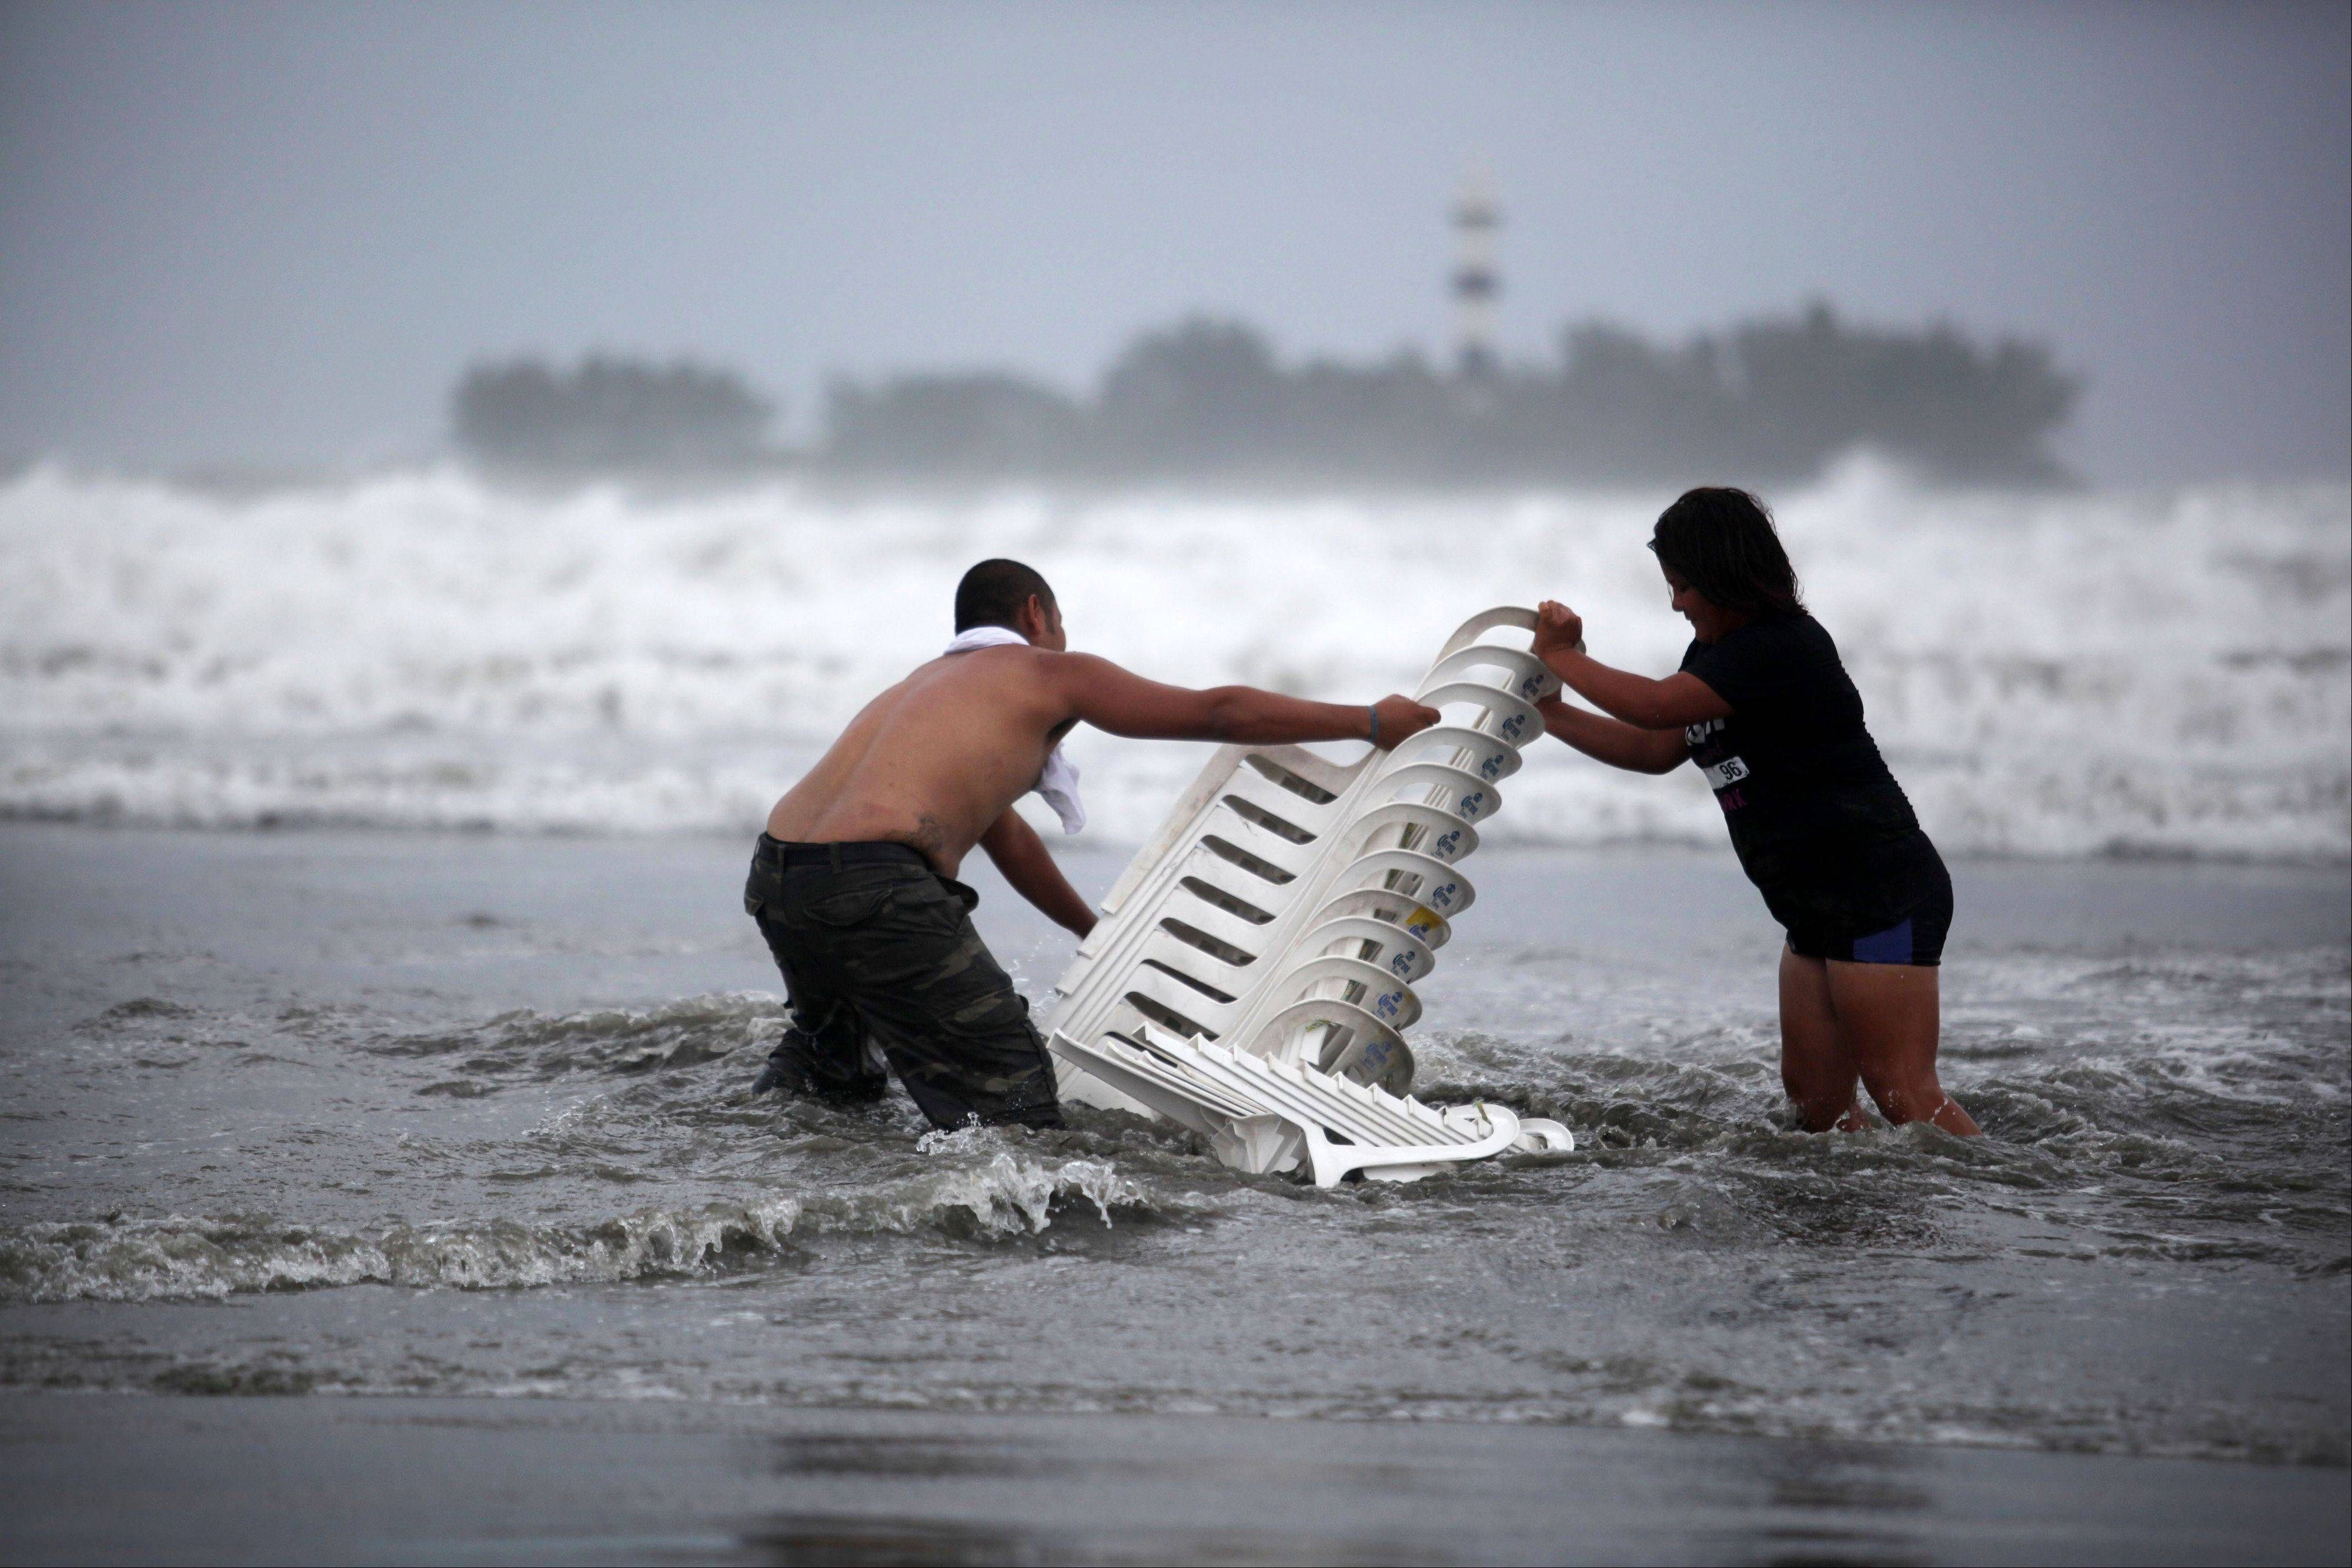 Vendors try to recover their chairs after high waves dragged their beach stalls into the sea in Veracruz, Mexico, Thursday Aug. 9, 2012. Tropical Storm Ernesto headed into Mexico�s southern Gulf coast as authorities in the flood-prone region prepared shelters, army troops and rescue personnel for drenching rains.